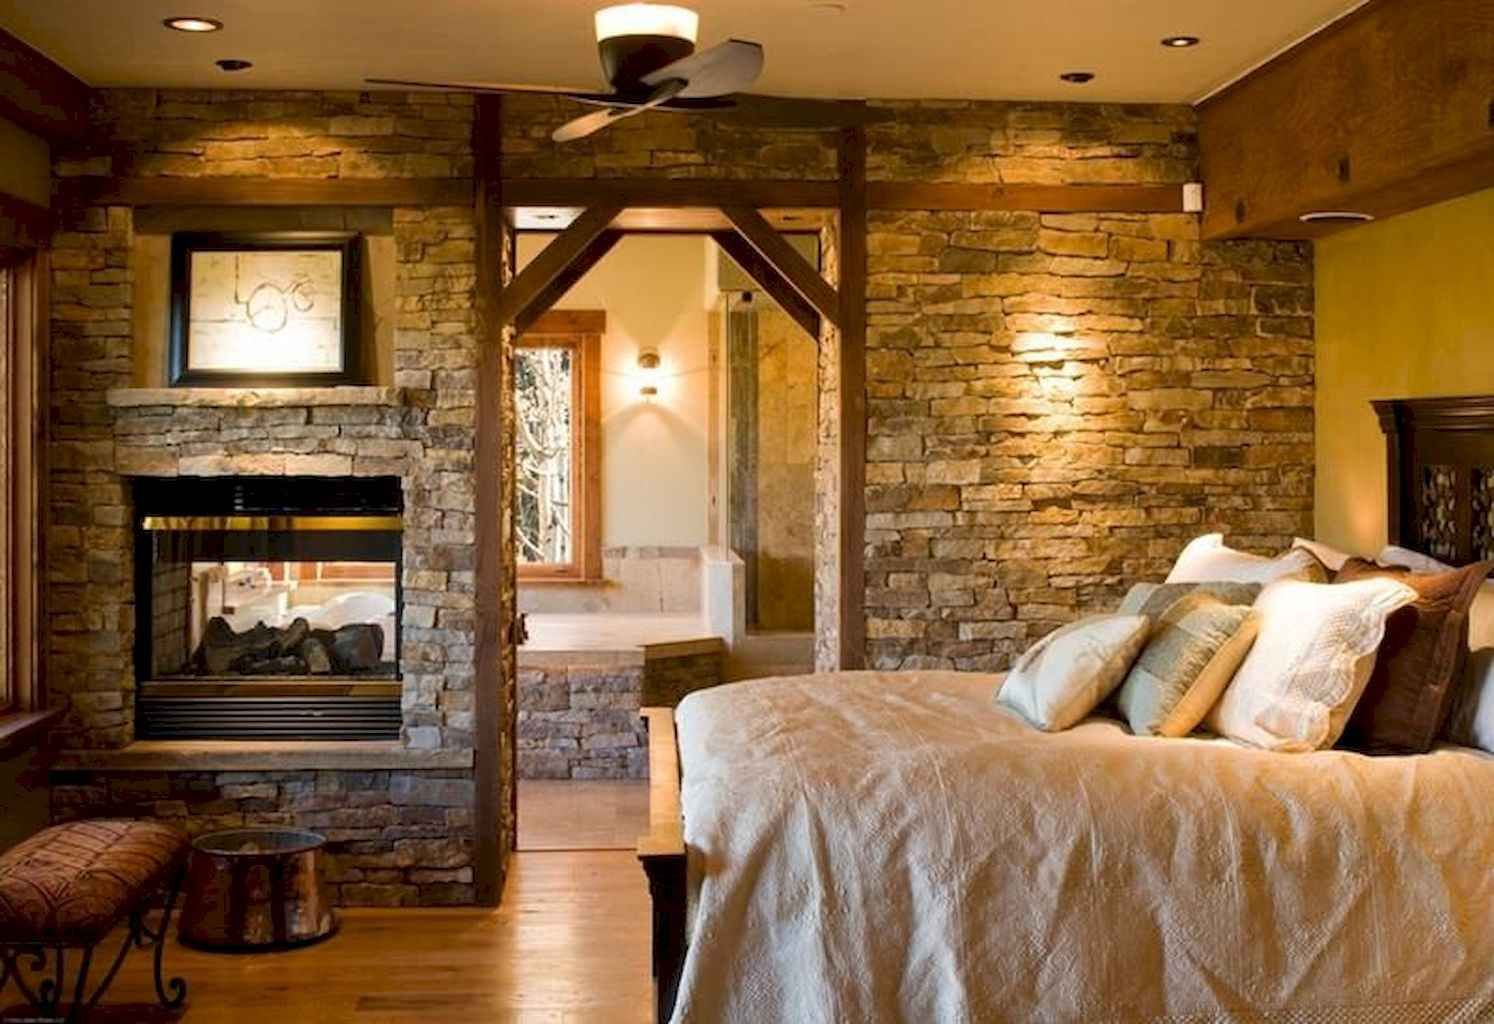 60 Farmhouse Master Bedroom Decorating Ideas images